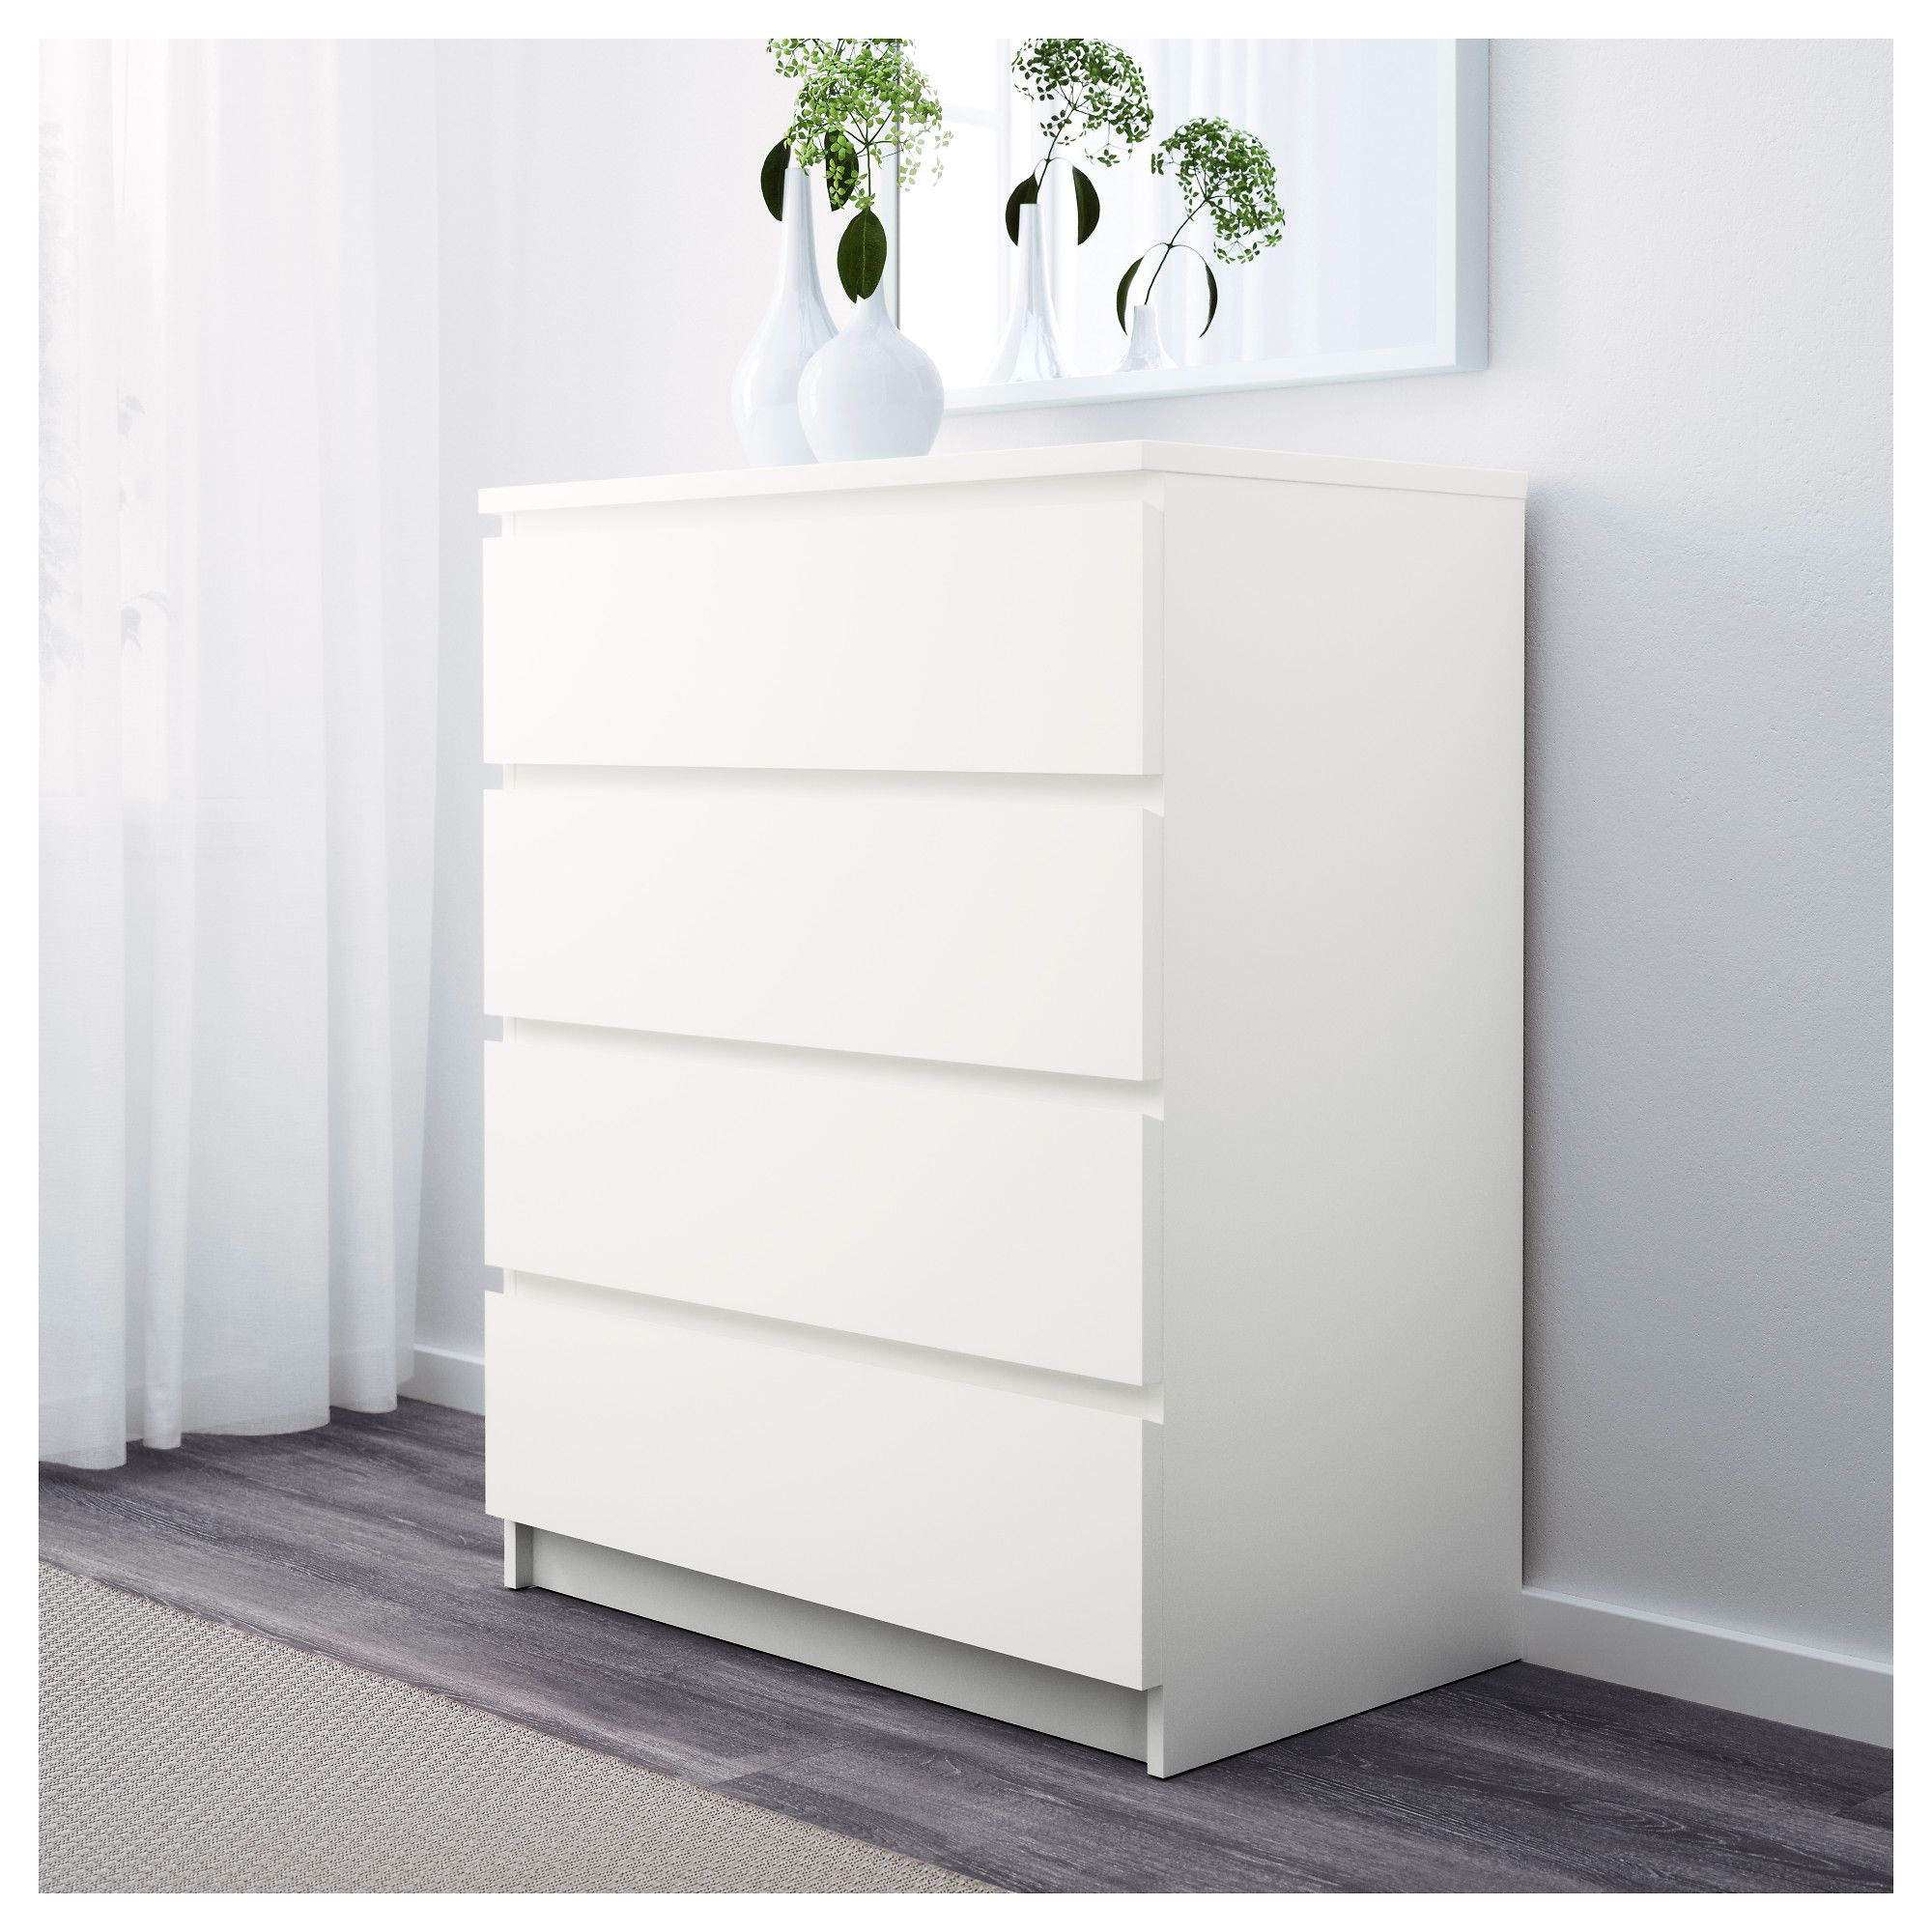 Ikea Kommode Weiß Hochglanz Malm Chest Of 4 Drawers White 80 X 100 Cm New Home Misc